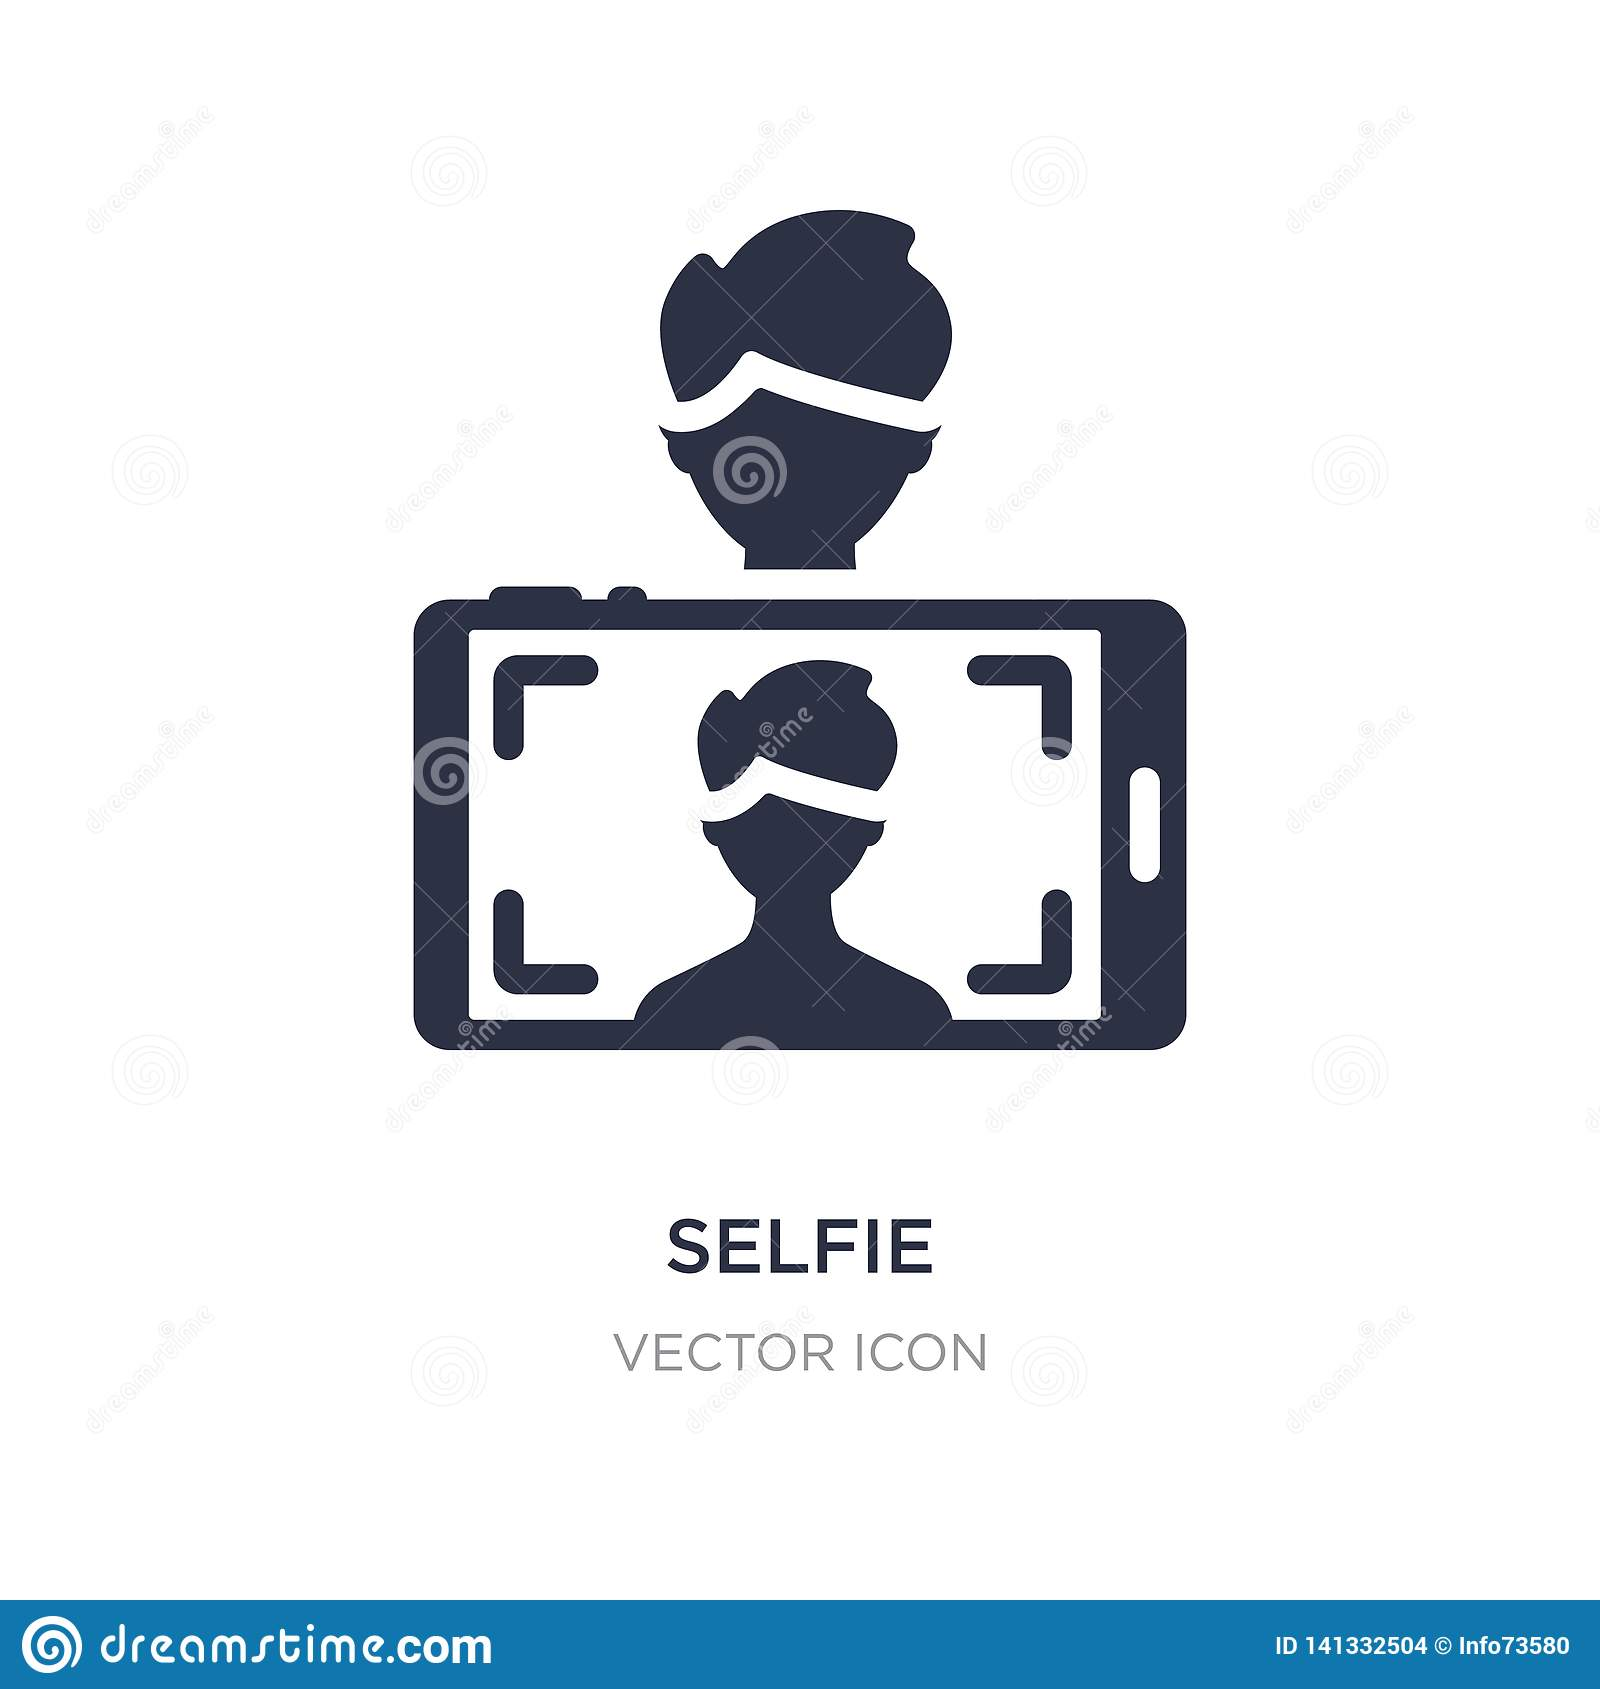 selfie icon on white background. Simple element illustration from Blogger and influencer concept